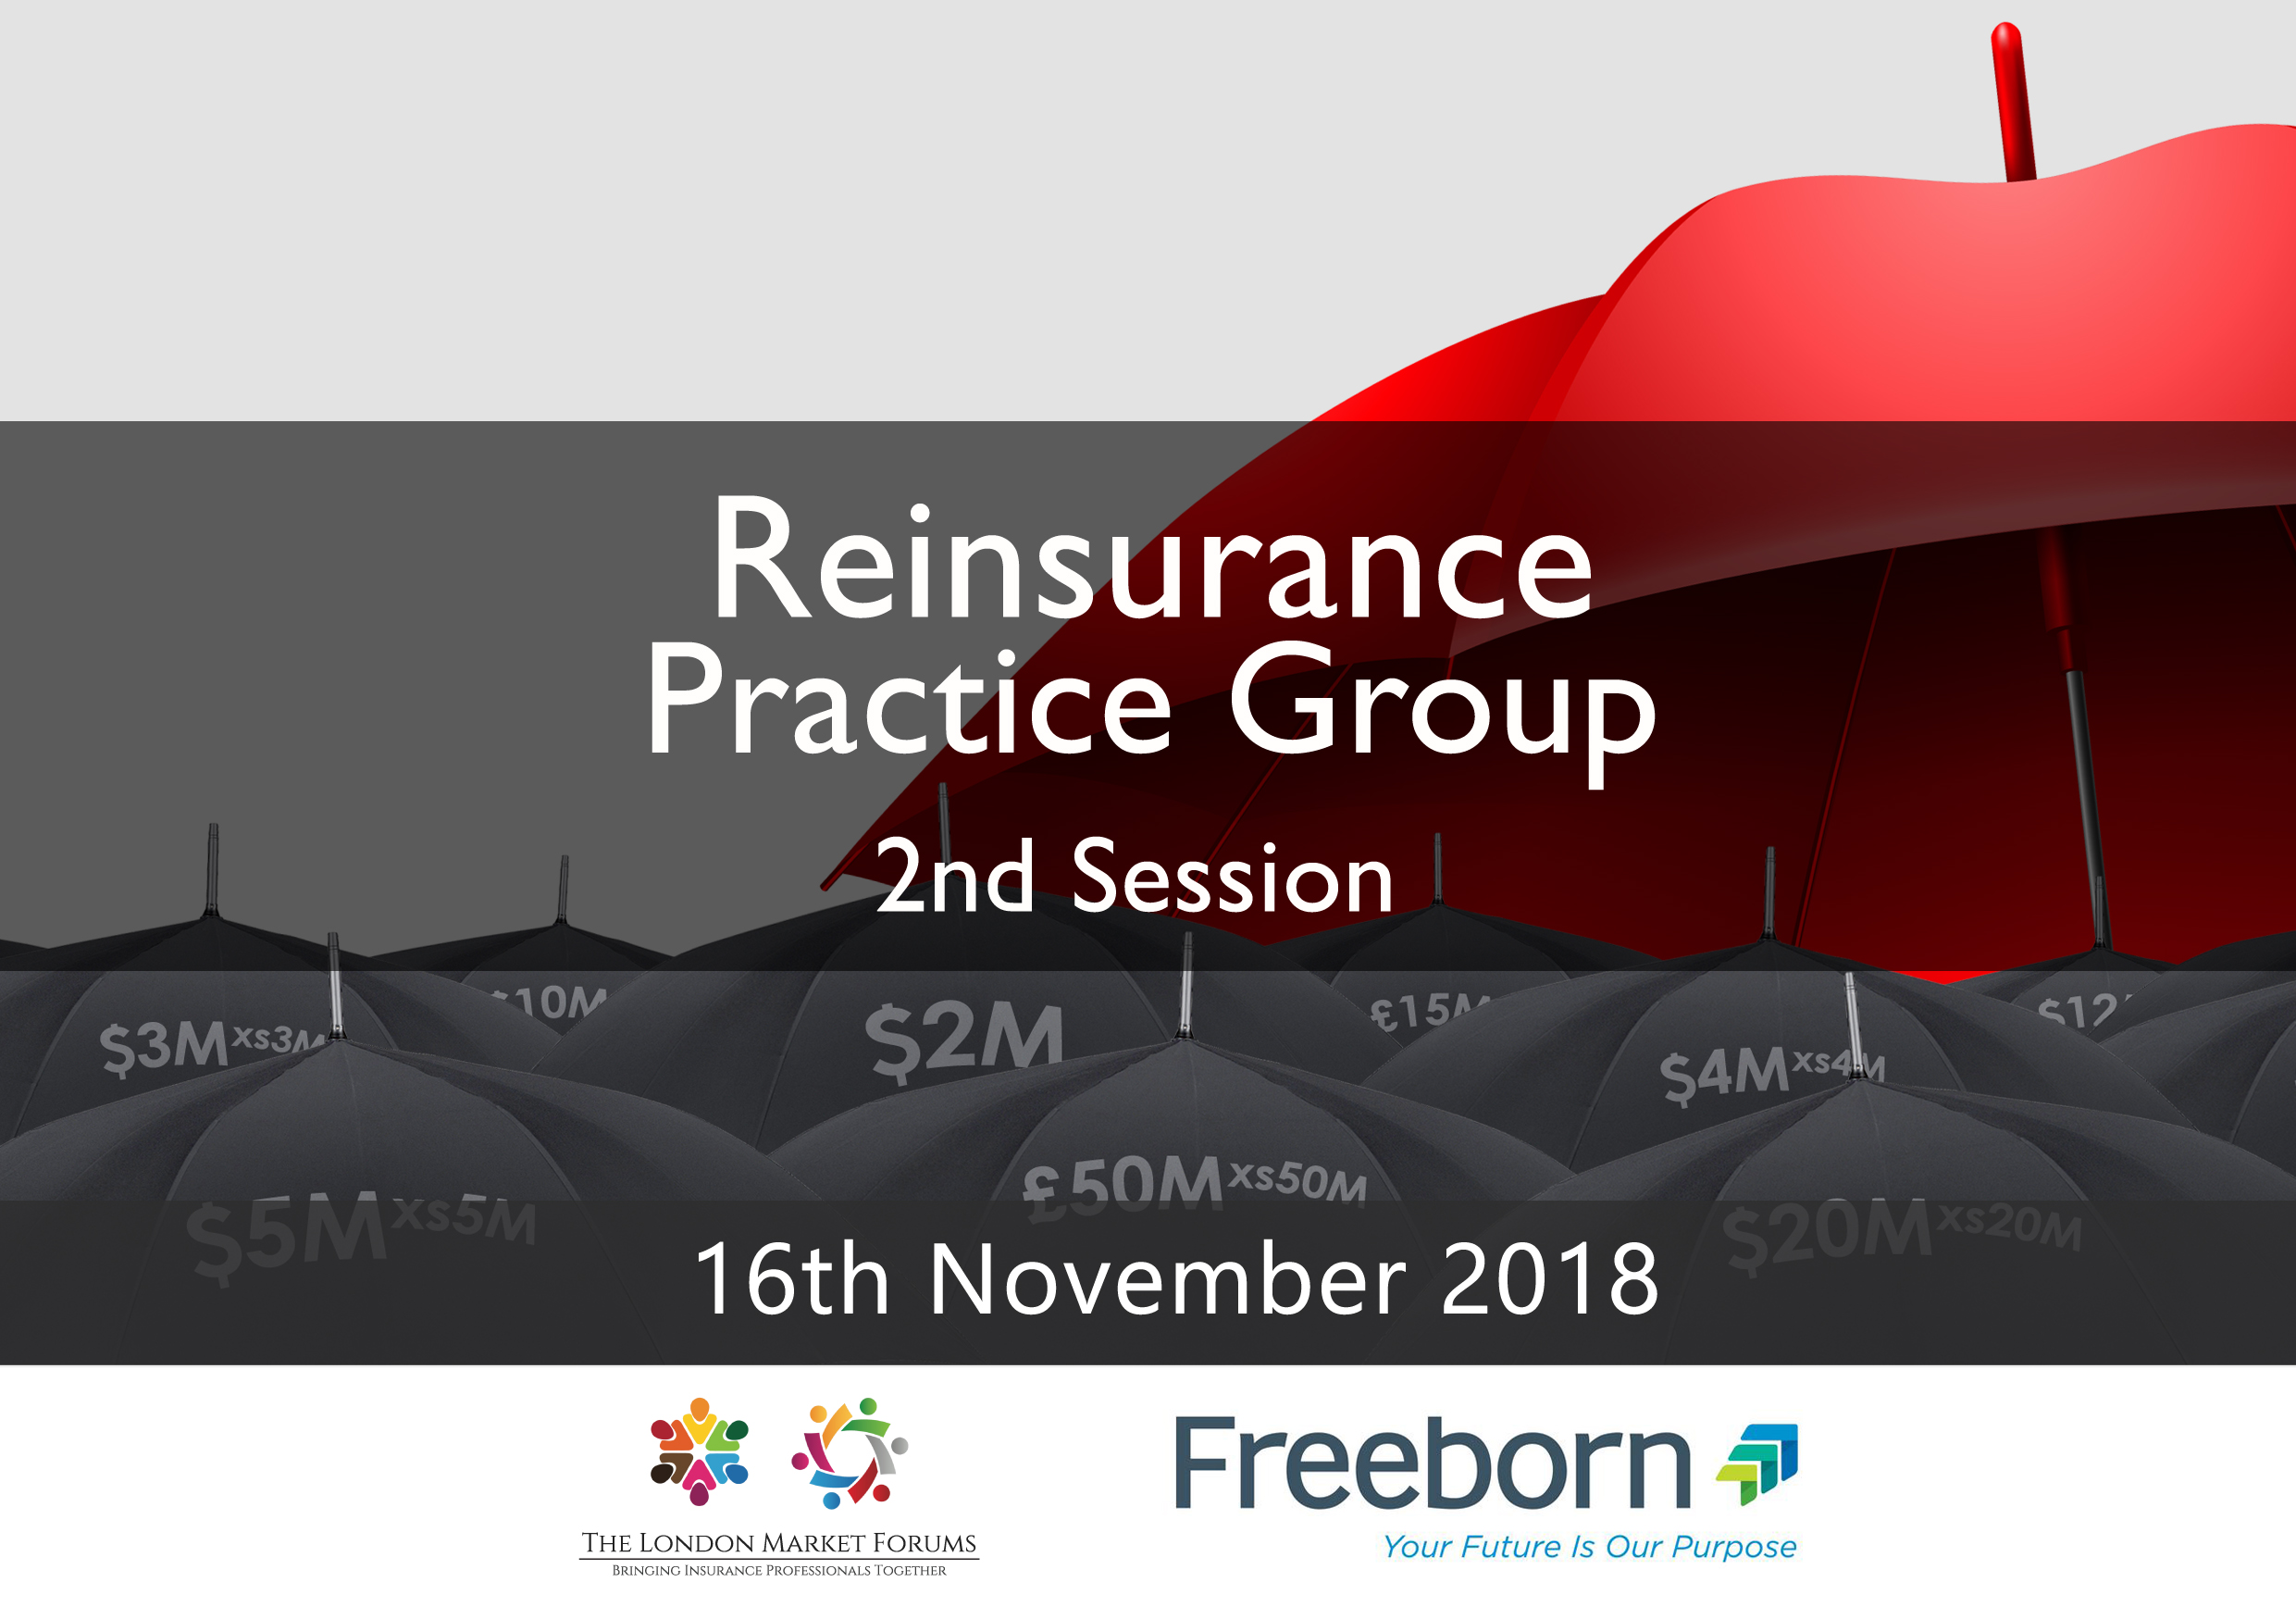 Reinsurance Practice Group - Second Session - 16th November 2018